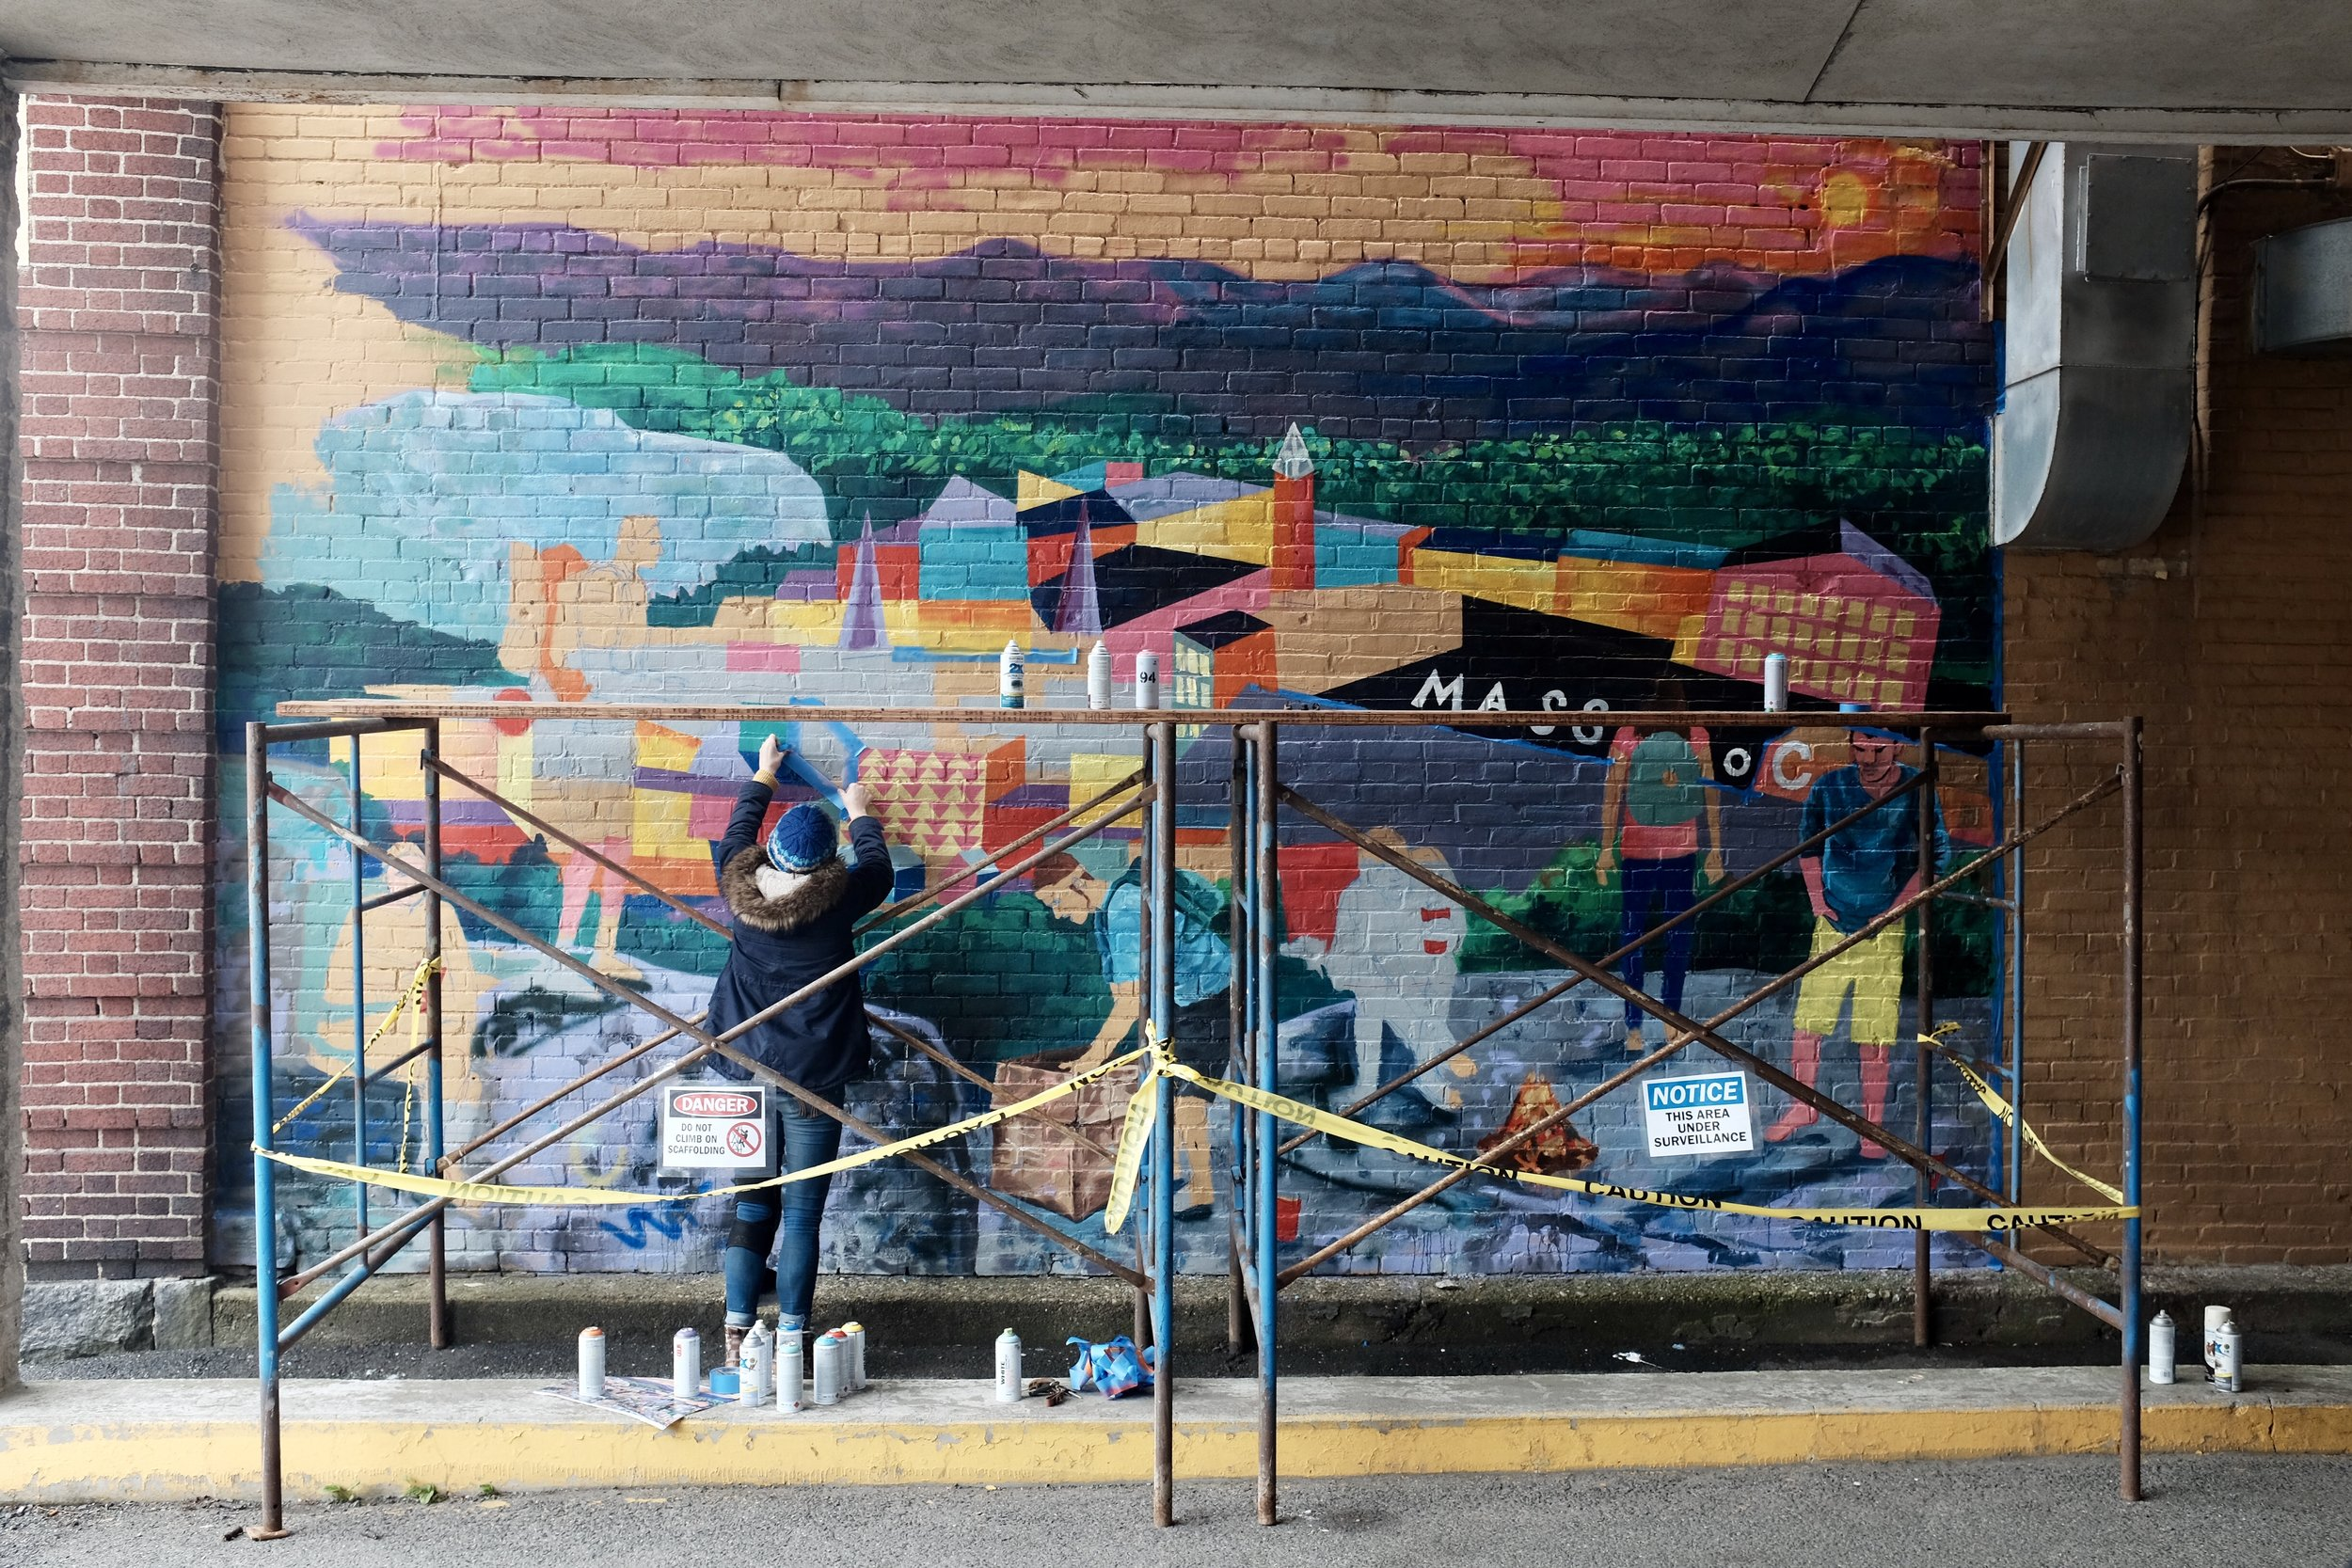 North Adams Project artist Danielle Klebes working on a downtown mural.